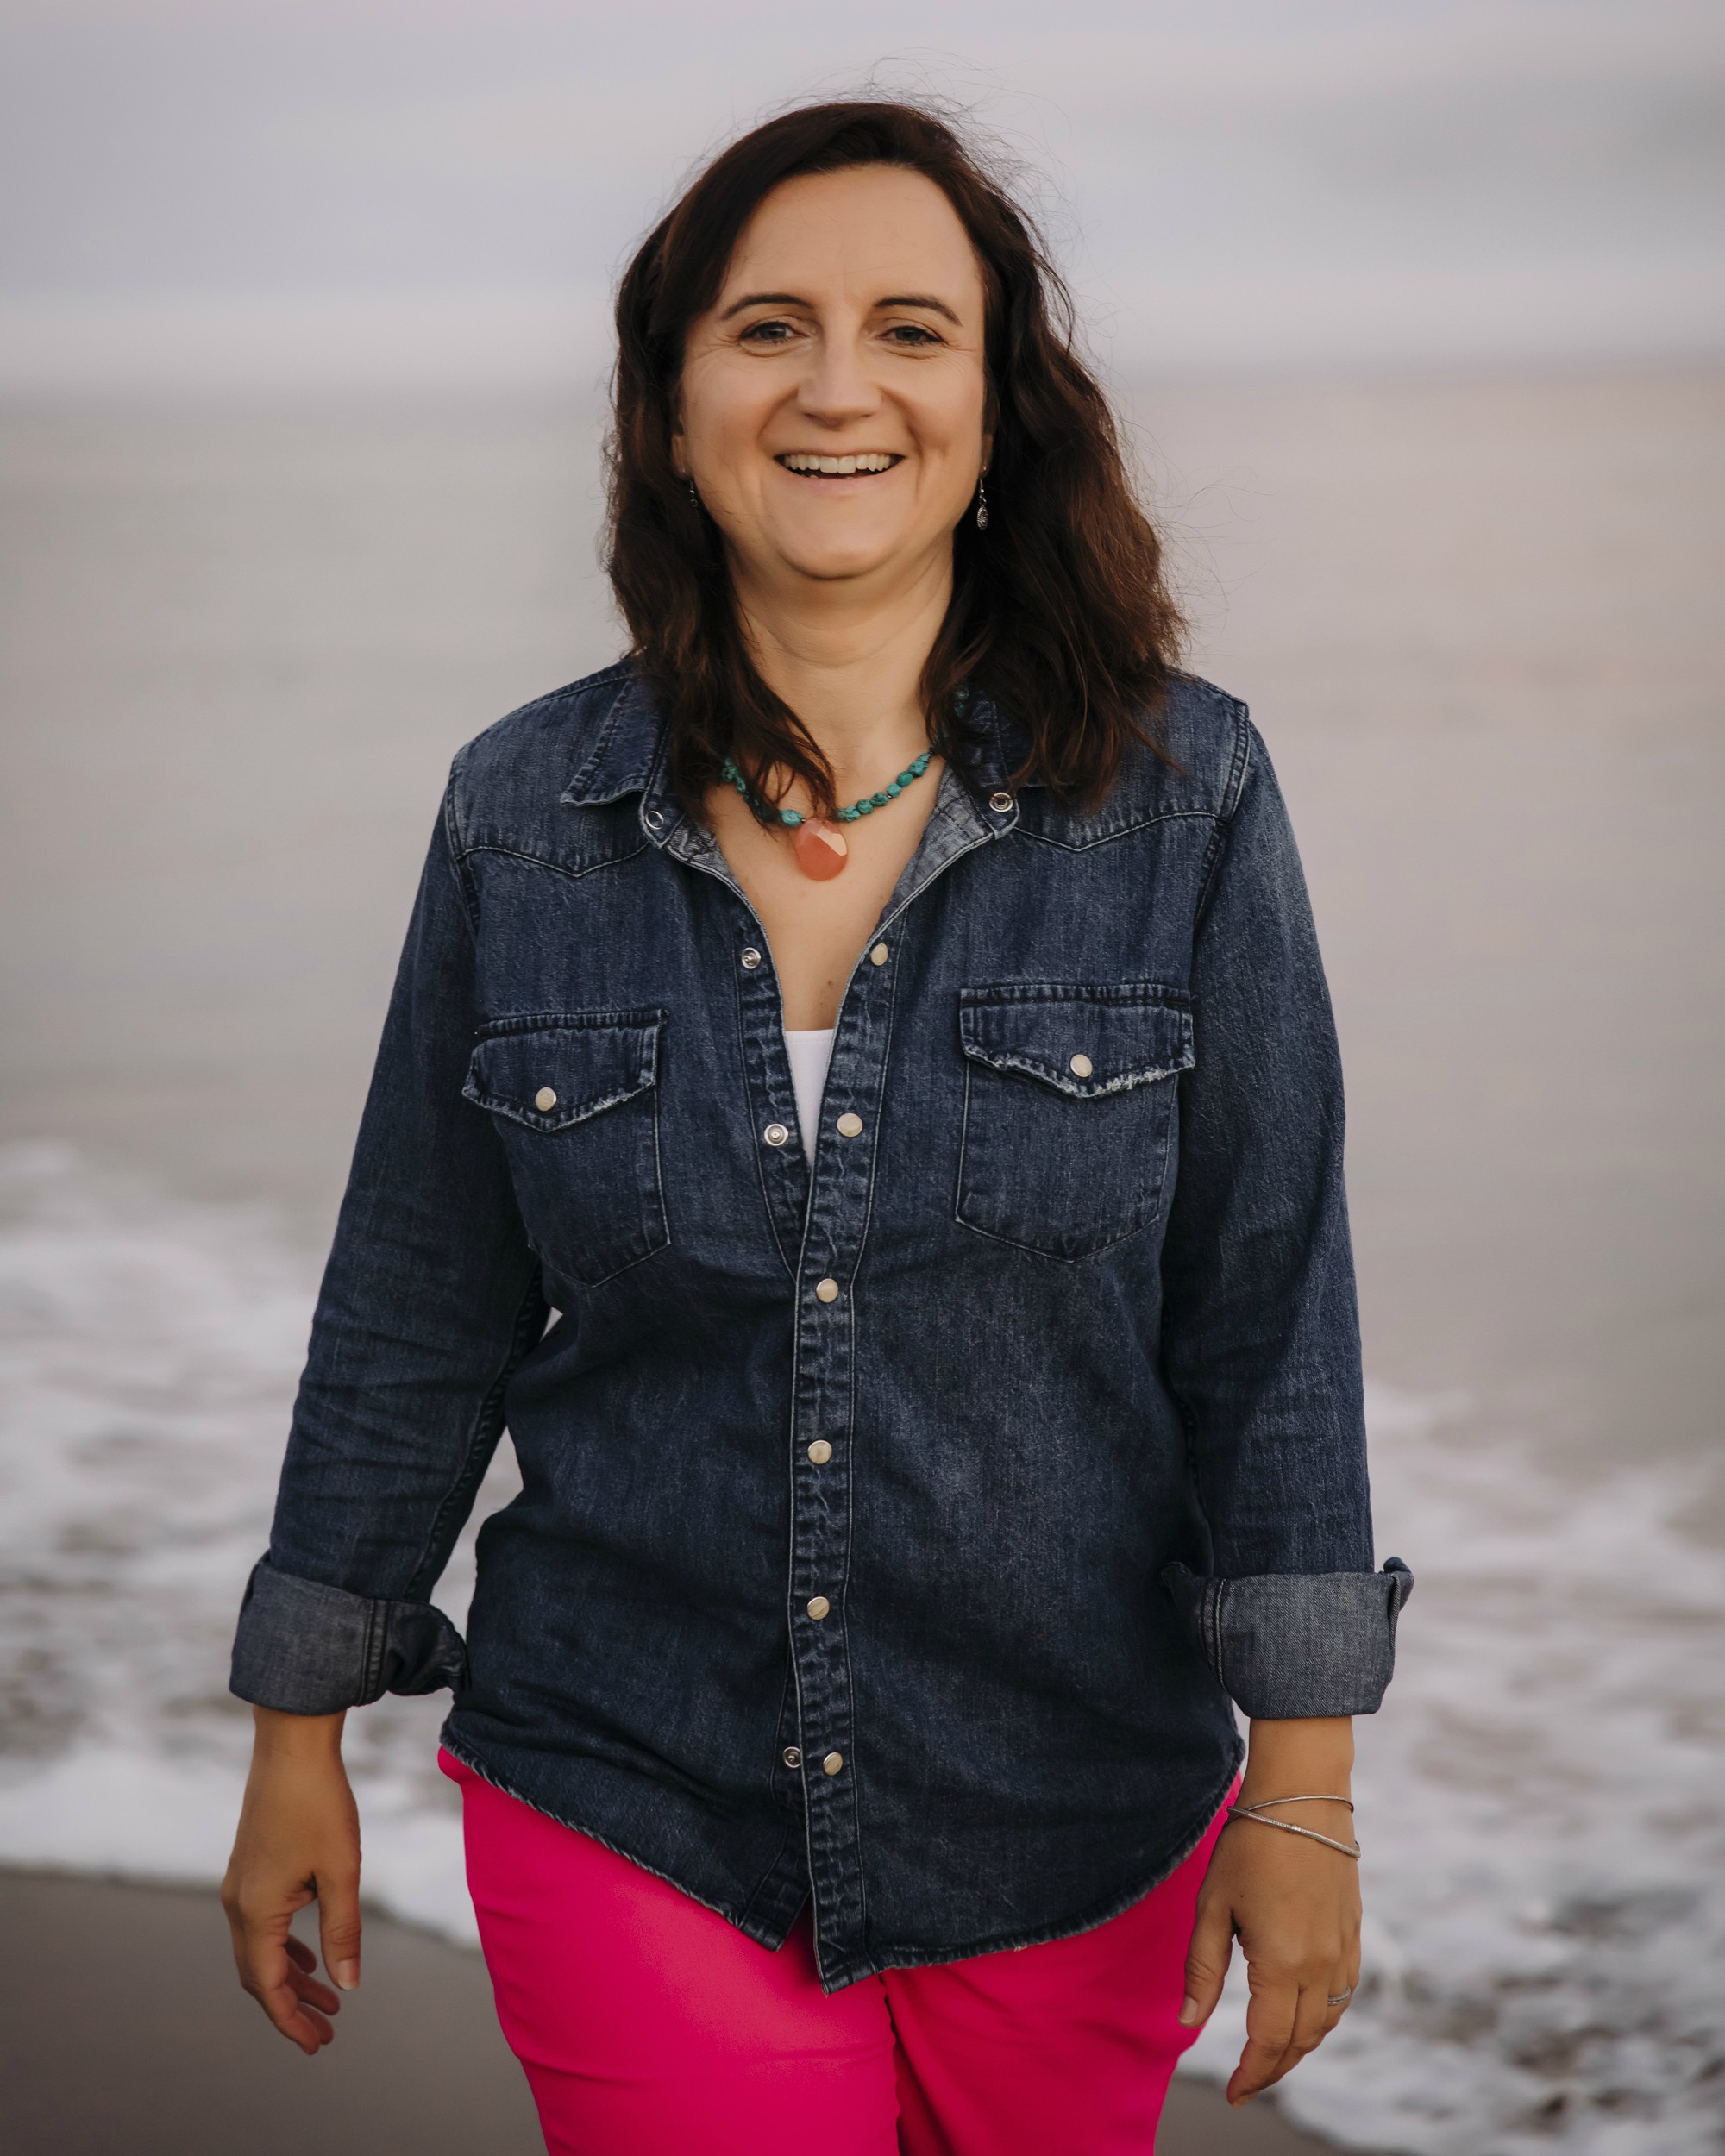 Image of Yvonne Gray owner of Wunderbirth by the beach in Santa Cruz Monterey Doula & Lactation Counselor - Yvonne Gray Wunderbirth